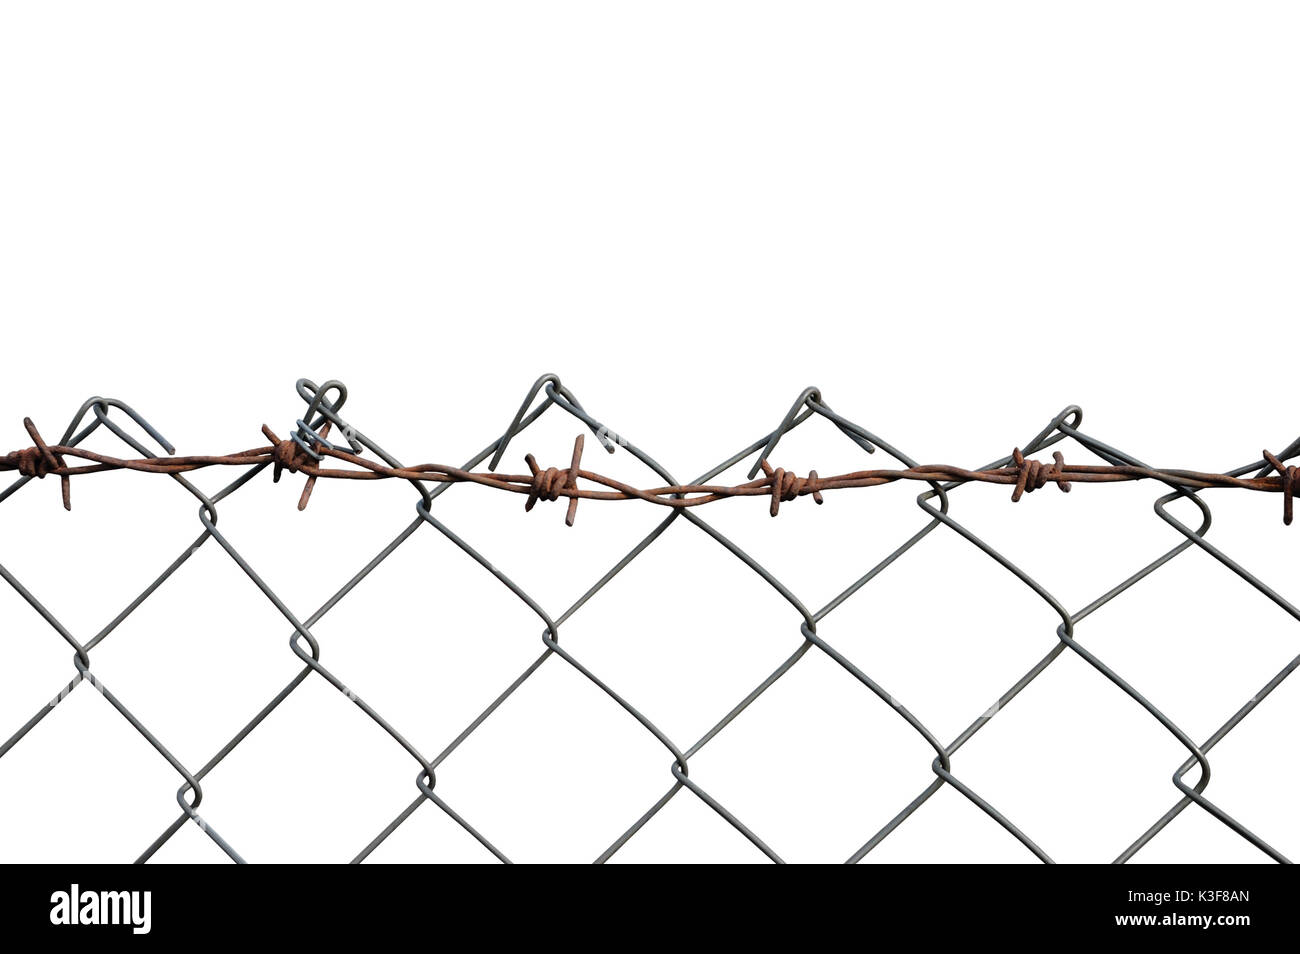 Barbed Wire Mesh Fence, Rust Barb Detail, Isolated Horizontal Rusty ...